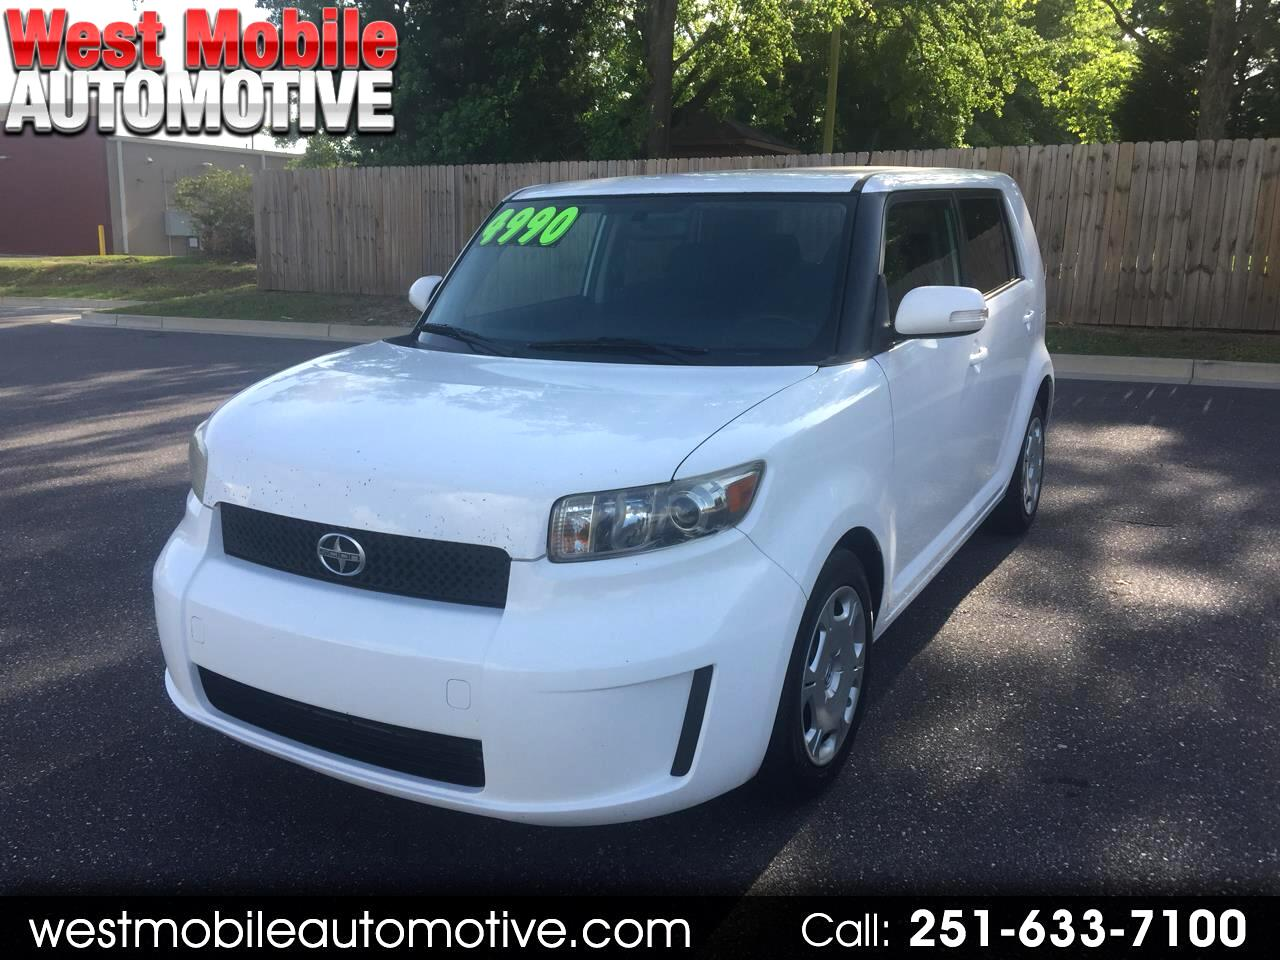 2009 Scion xB 5-Door Wagon 4-Spd AT